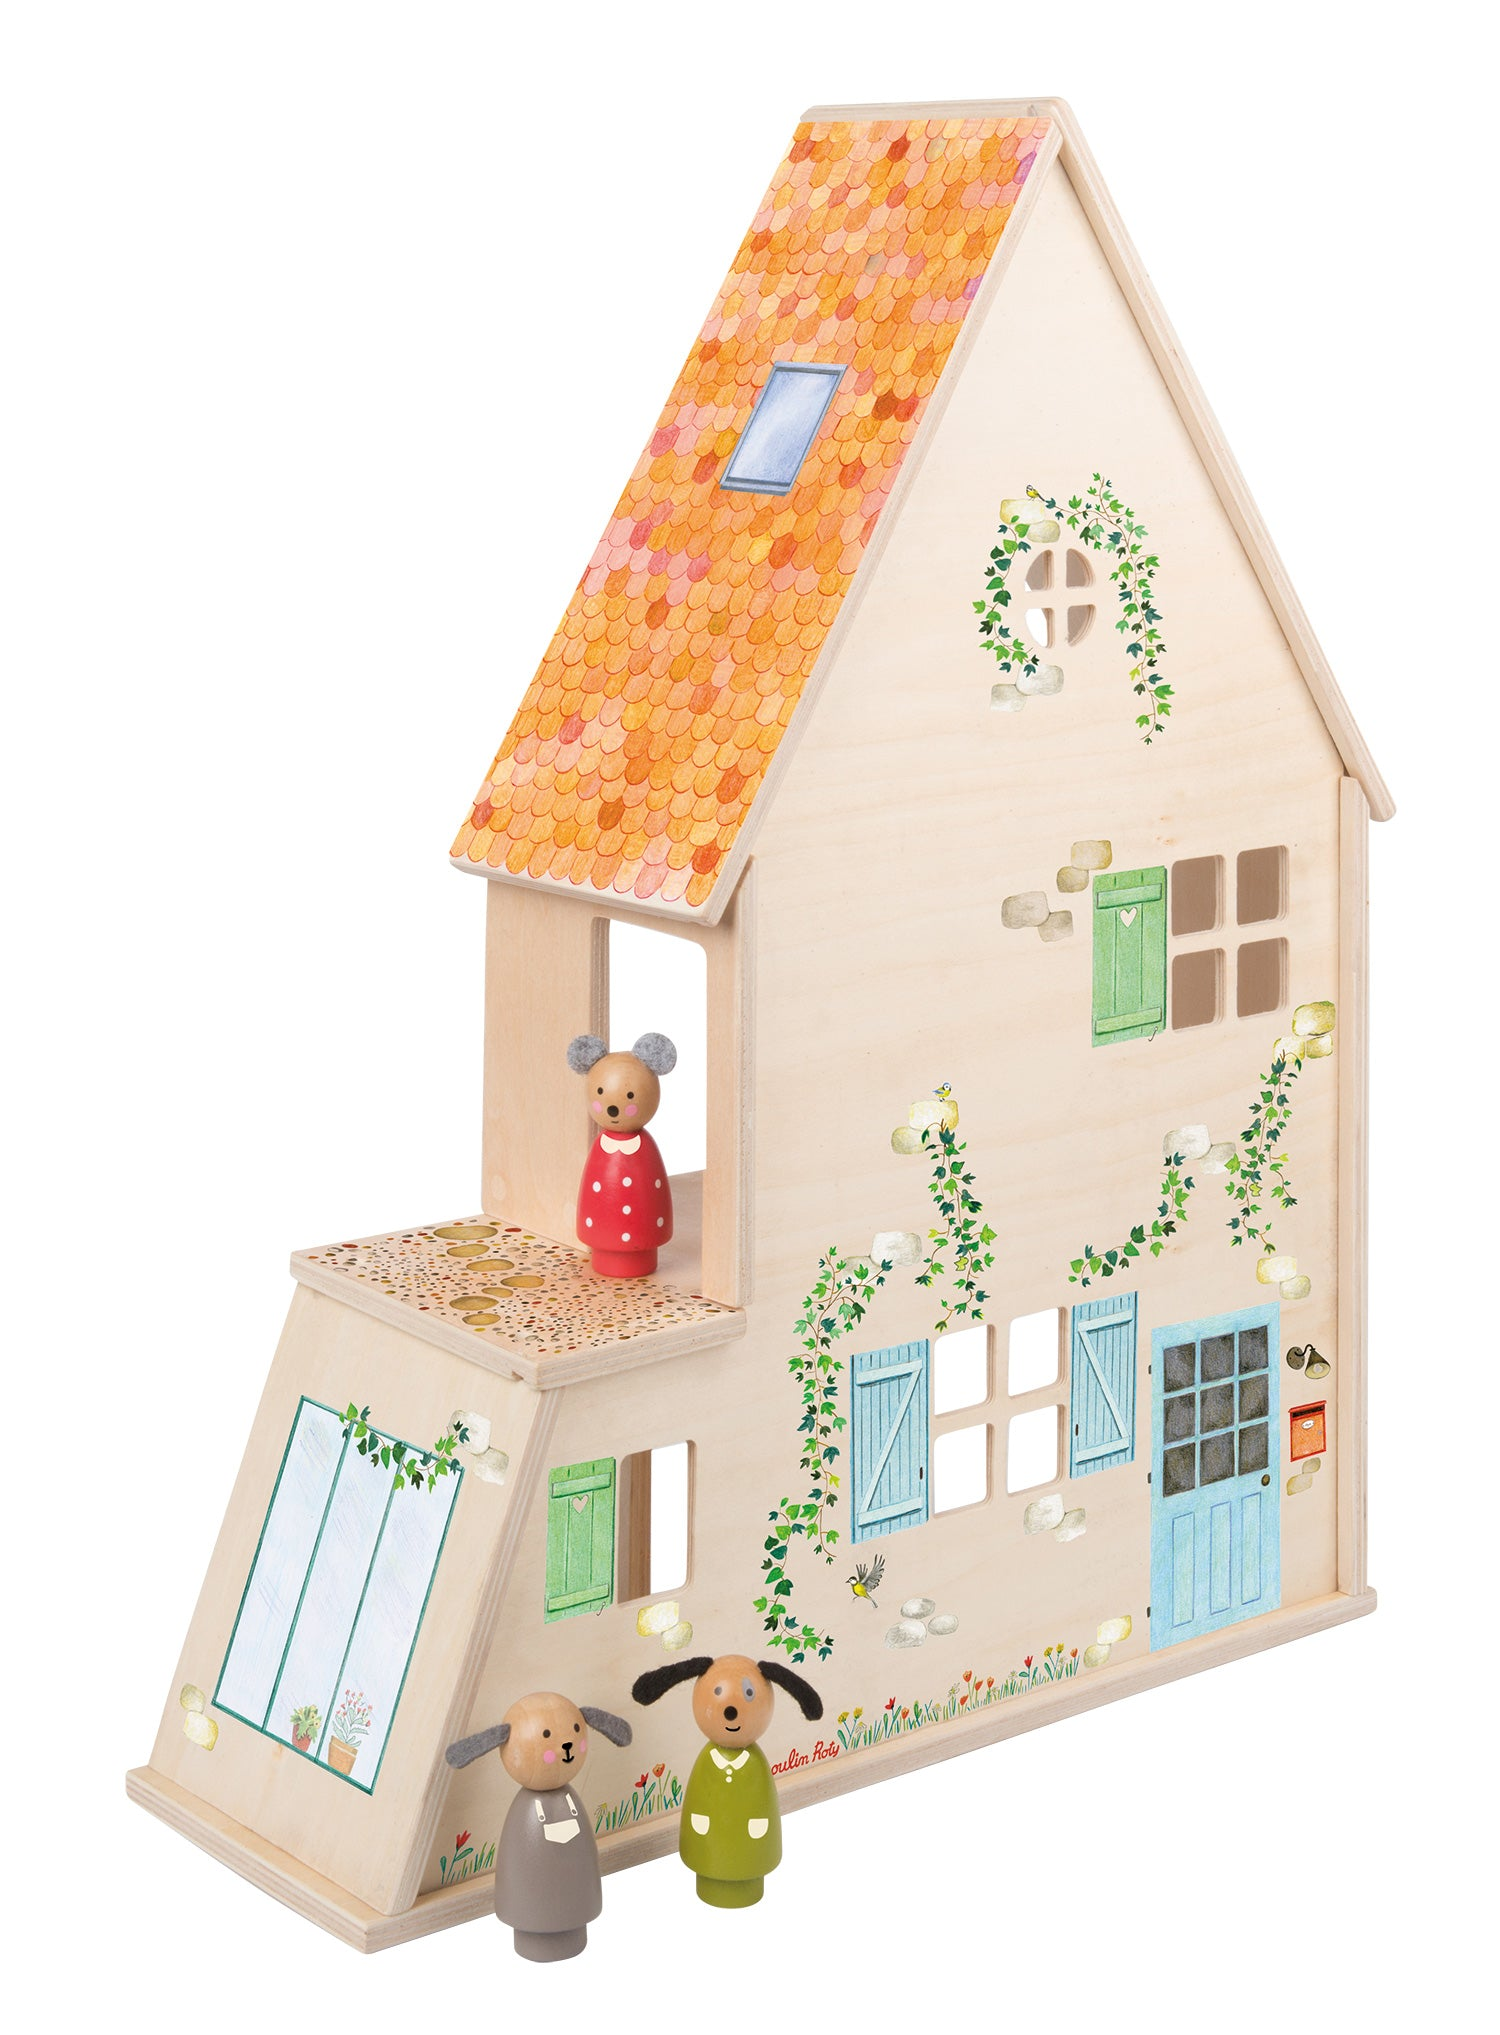 on a white background, the back of a tall, narrow, wooden dollhouse with a sloped roof. Illustration details are painted on the outside.three wooden animal peg dolls are outside the house.